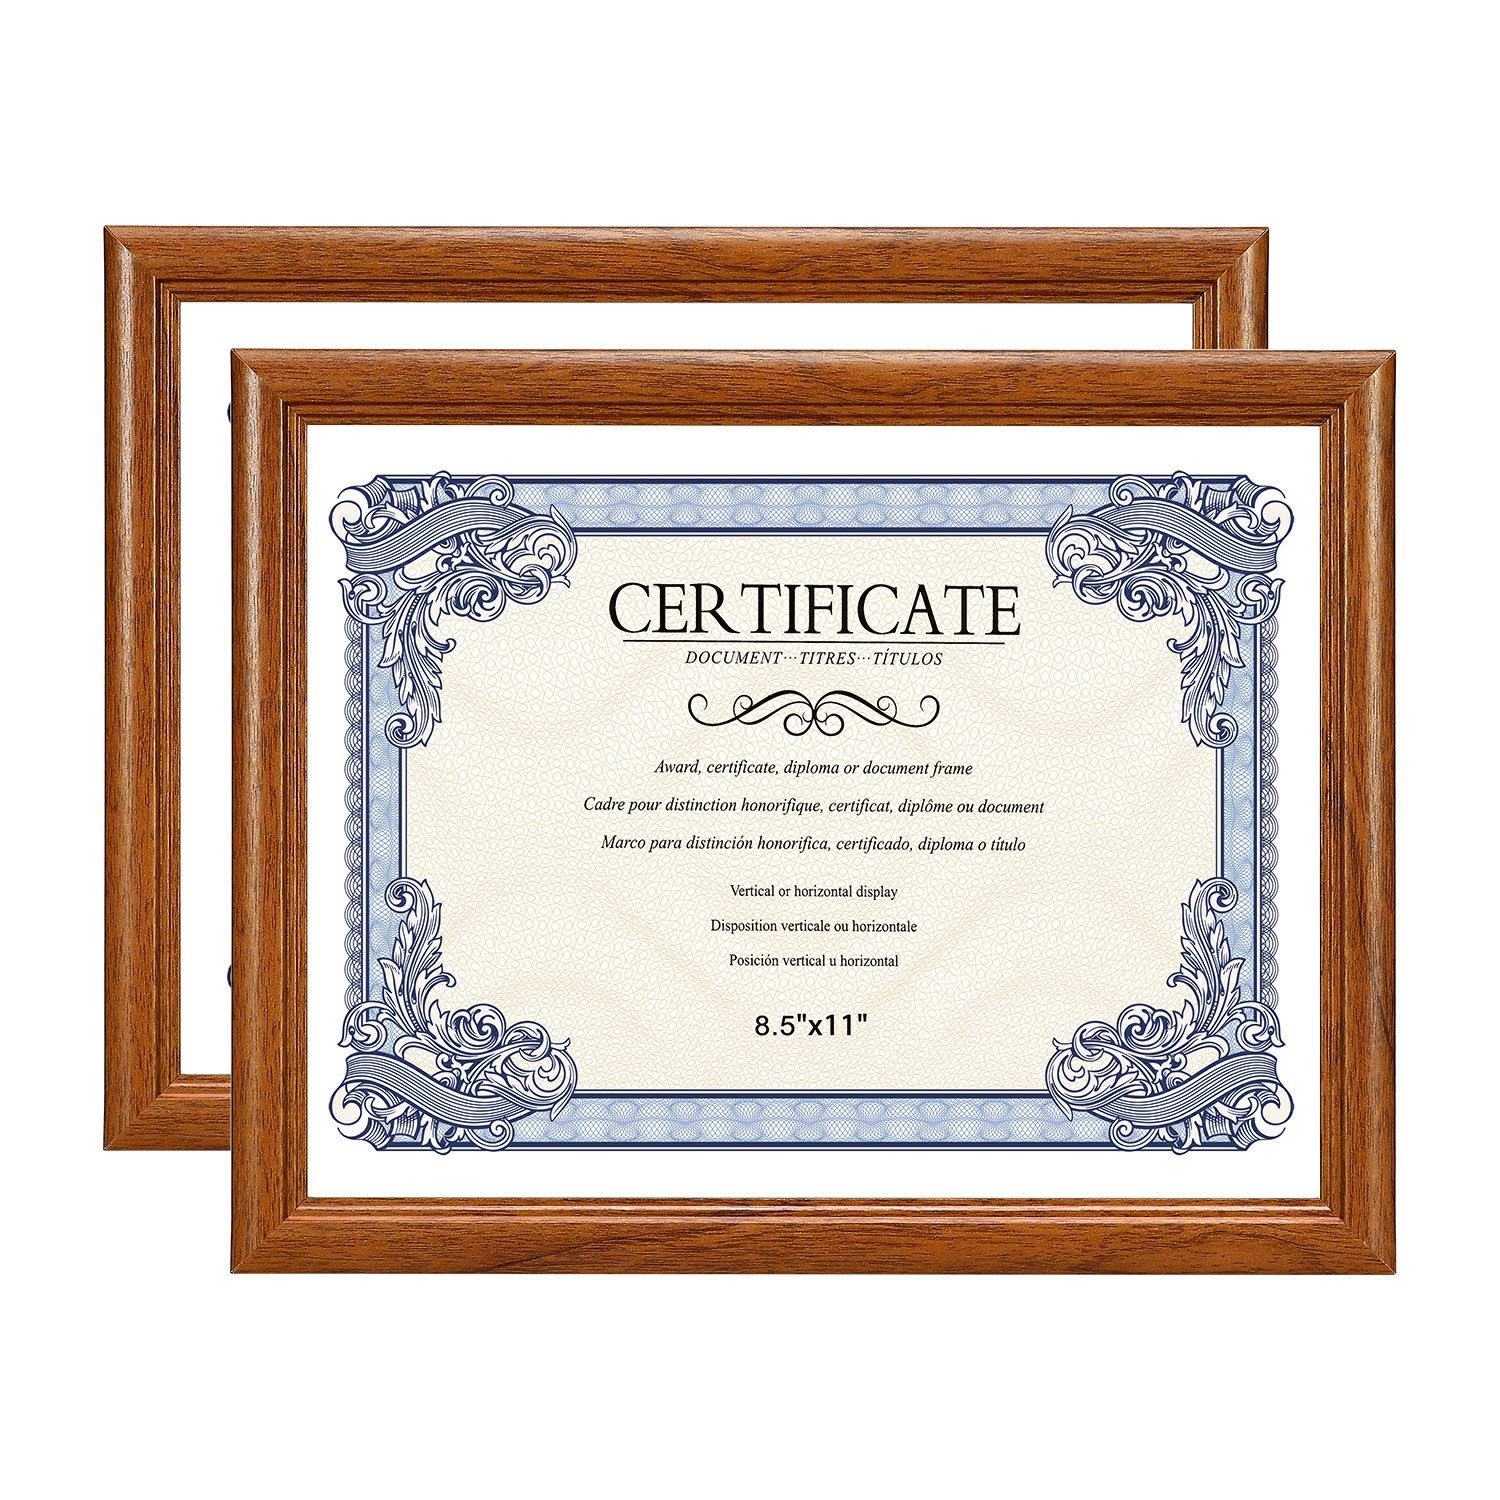 Amistad 8.5X11 Brown Certificate Picture Frame, Document/Diploma Frame with Classic Simple Style, Natural Wood Grain, 2 Pack